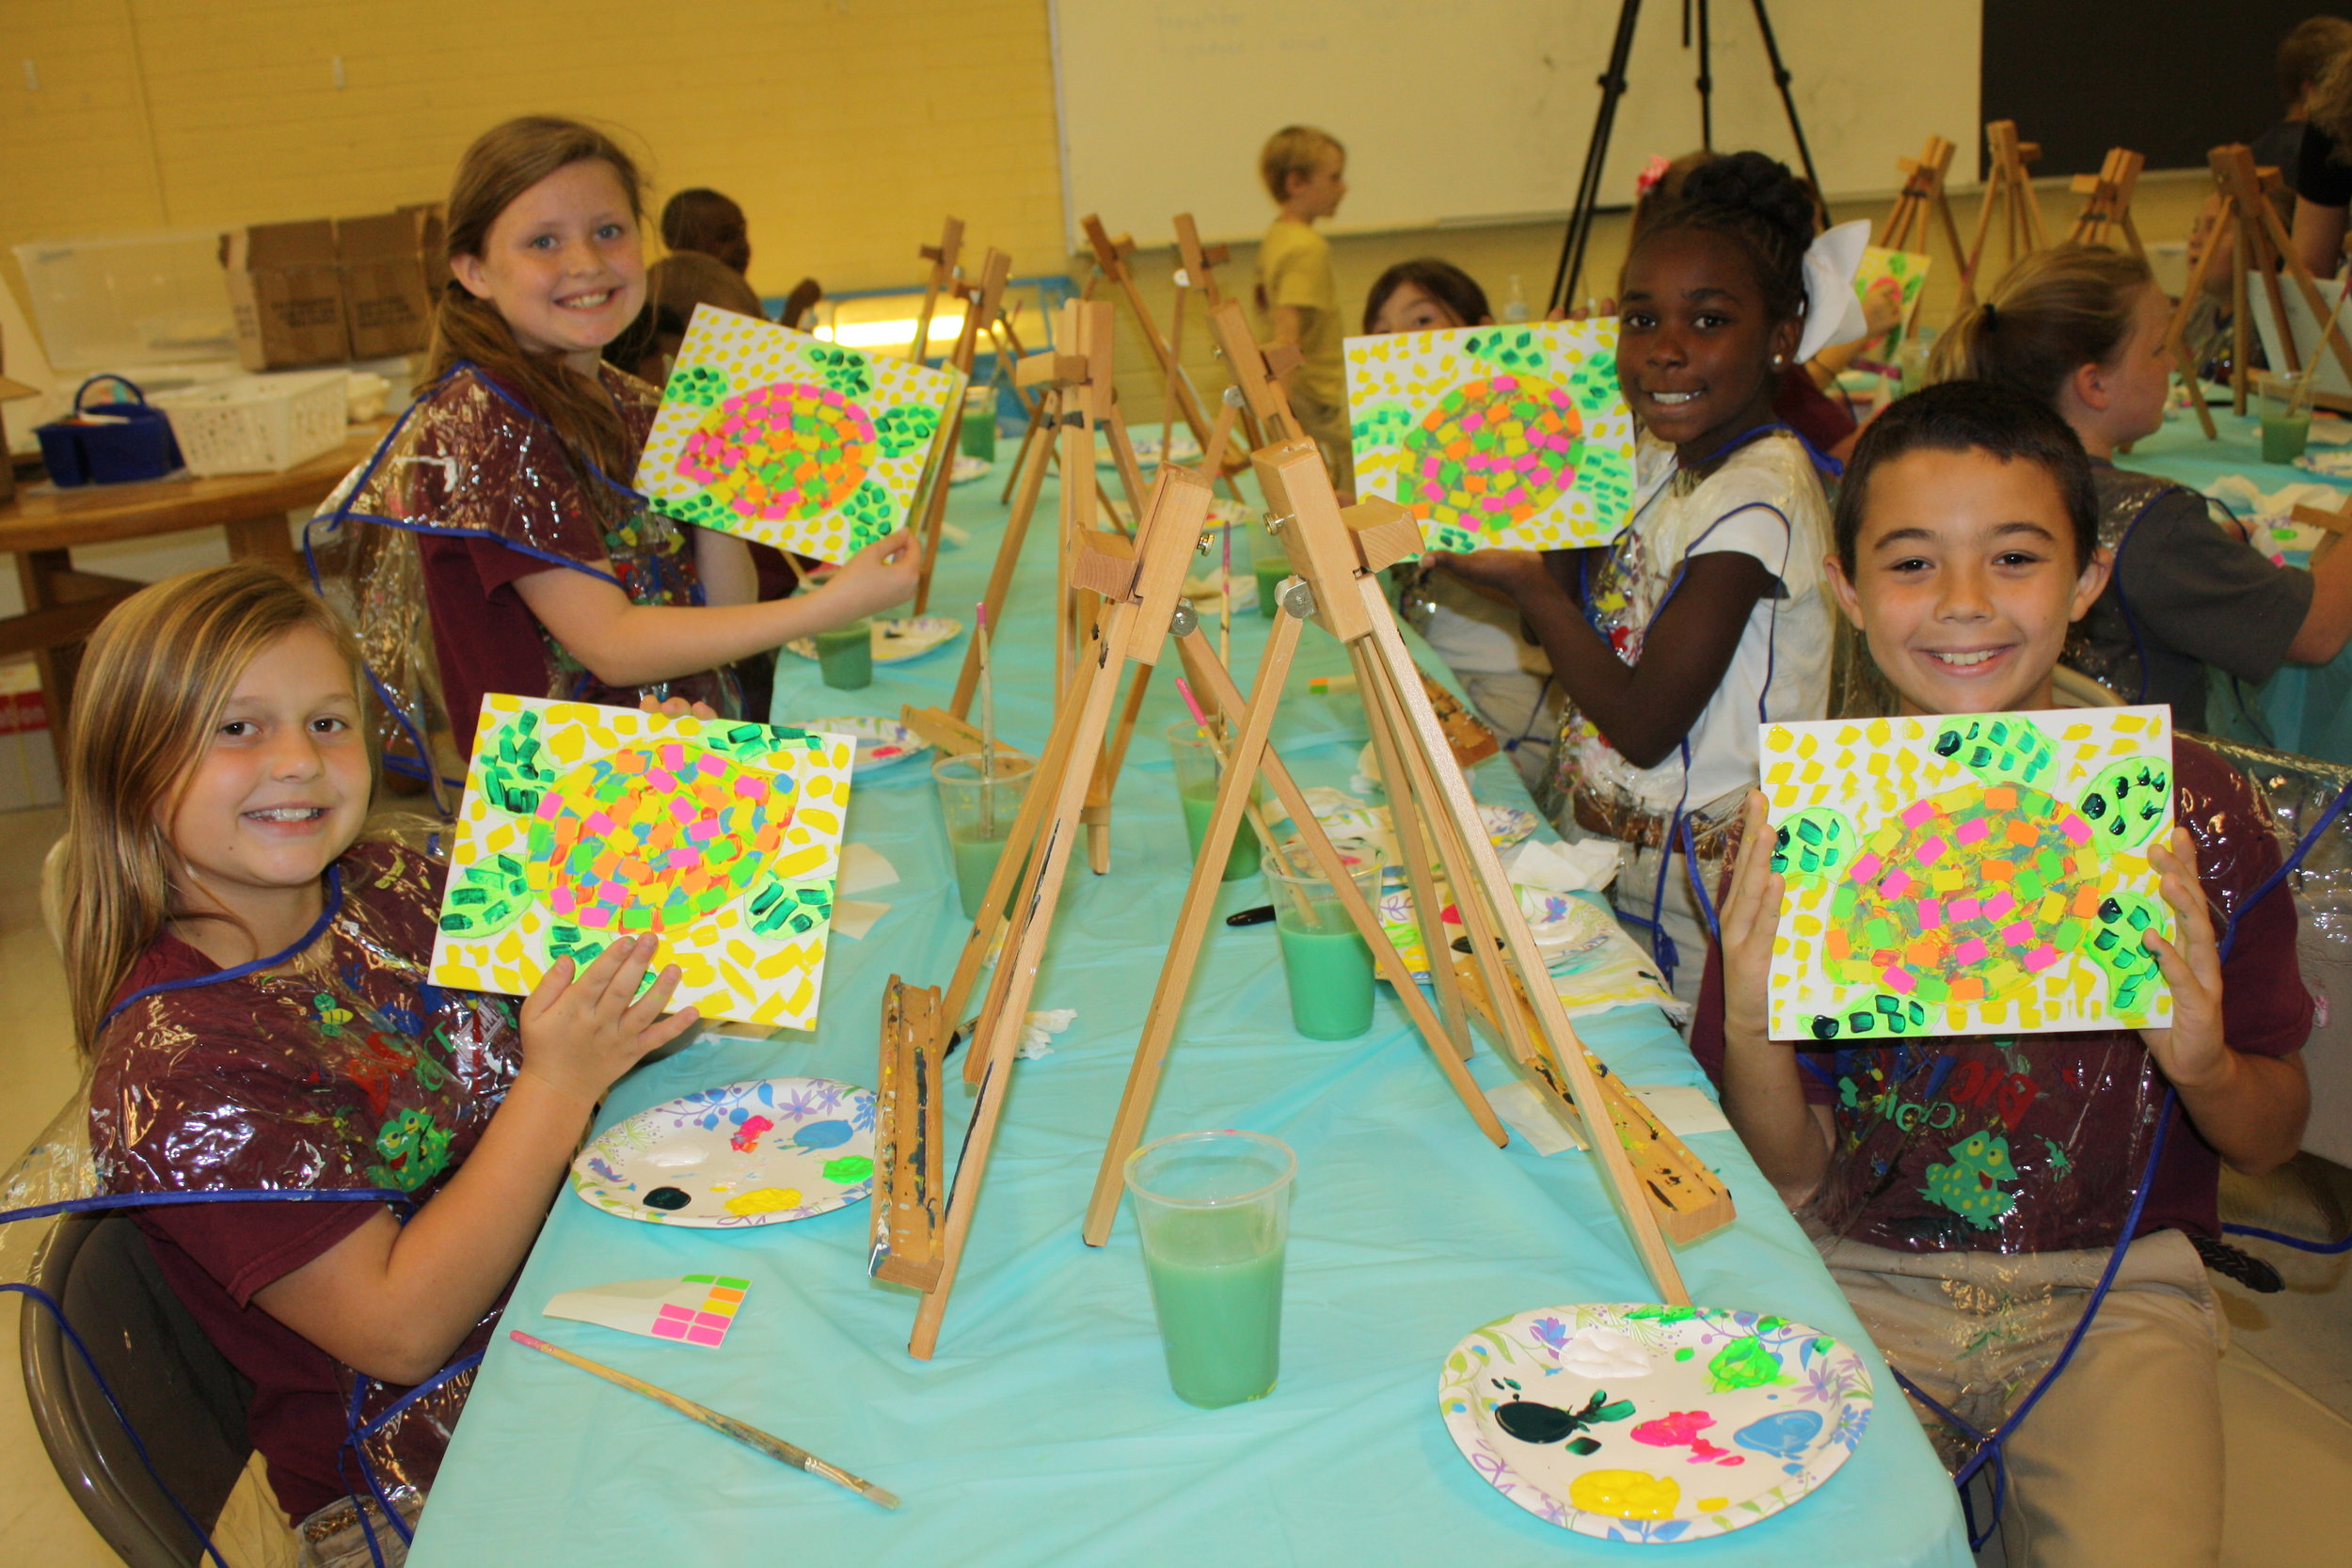 Students at Chatom Elementary showcase their masterpieces midway through the class.